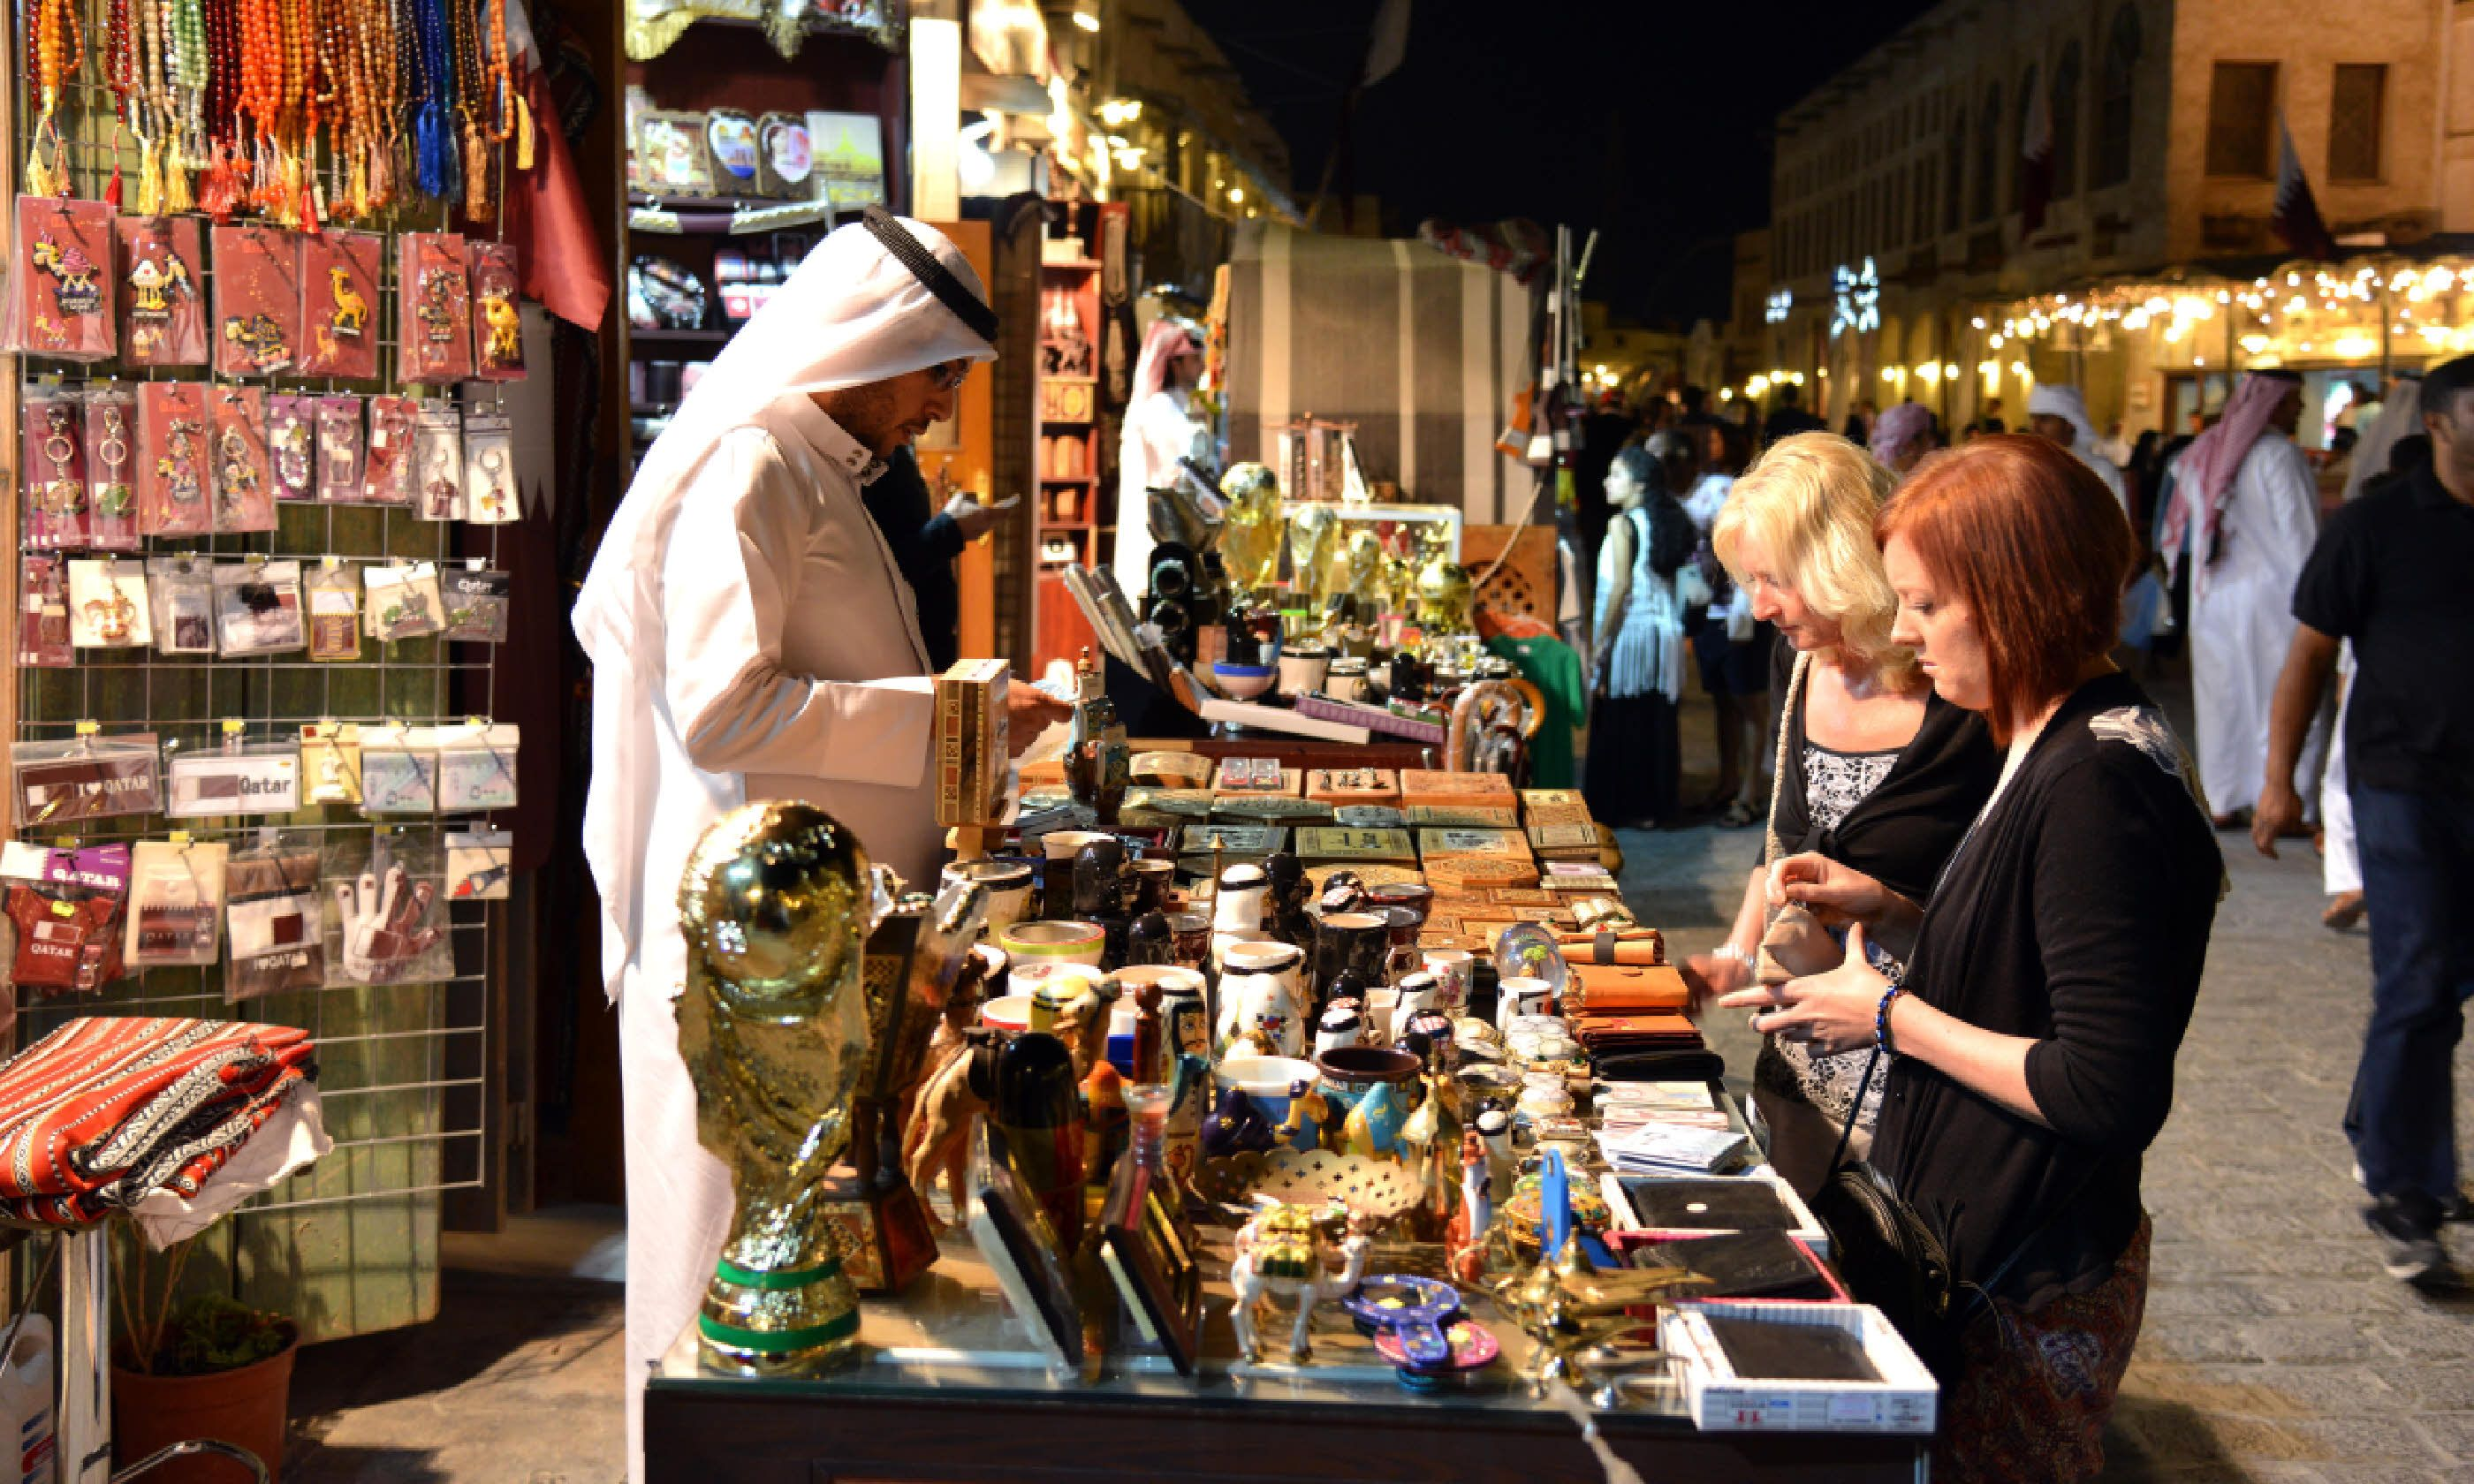 Shopping in Souq Waqif, Doha (Shutterstock)